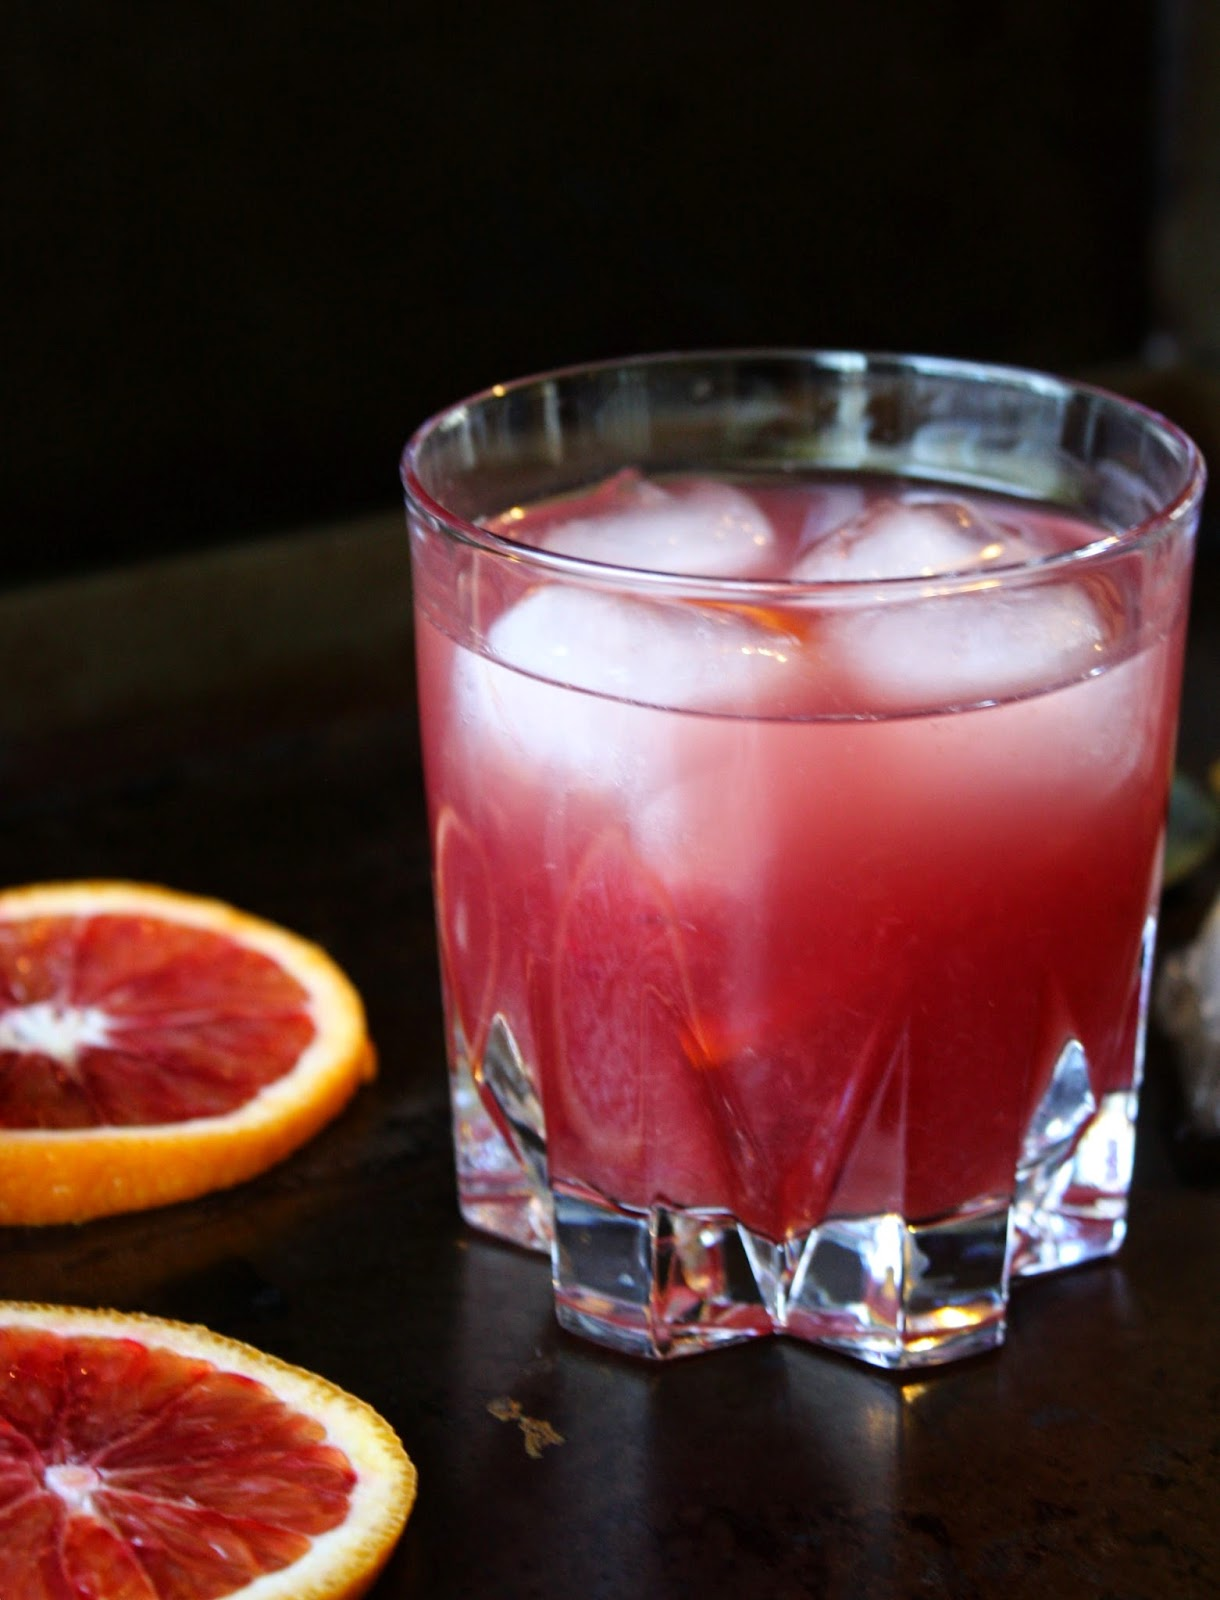 The Blood Orange Cocktail